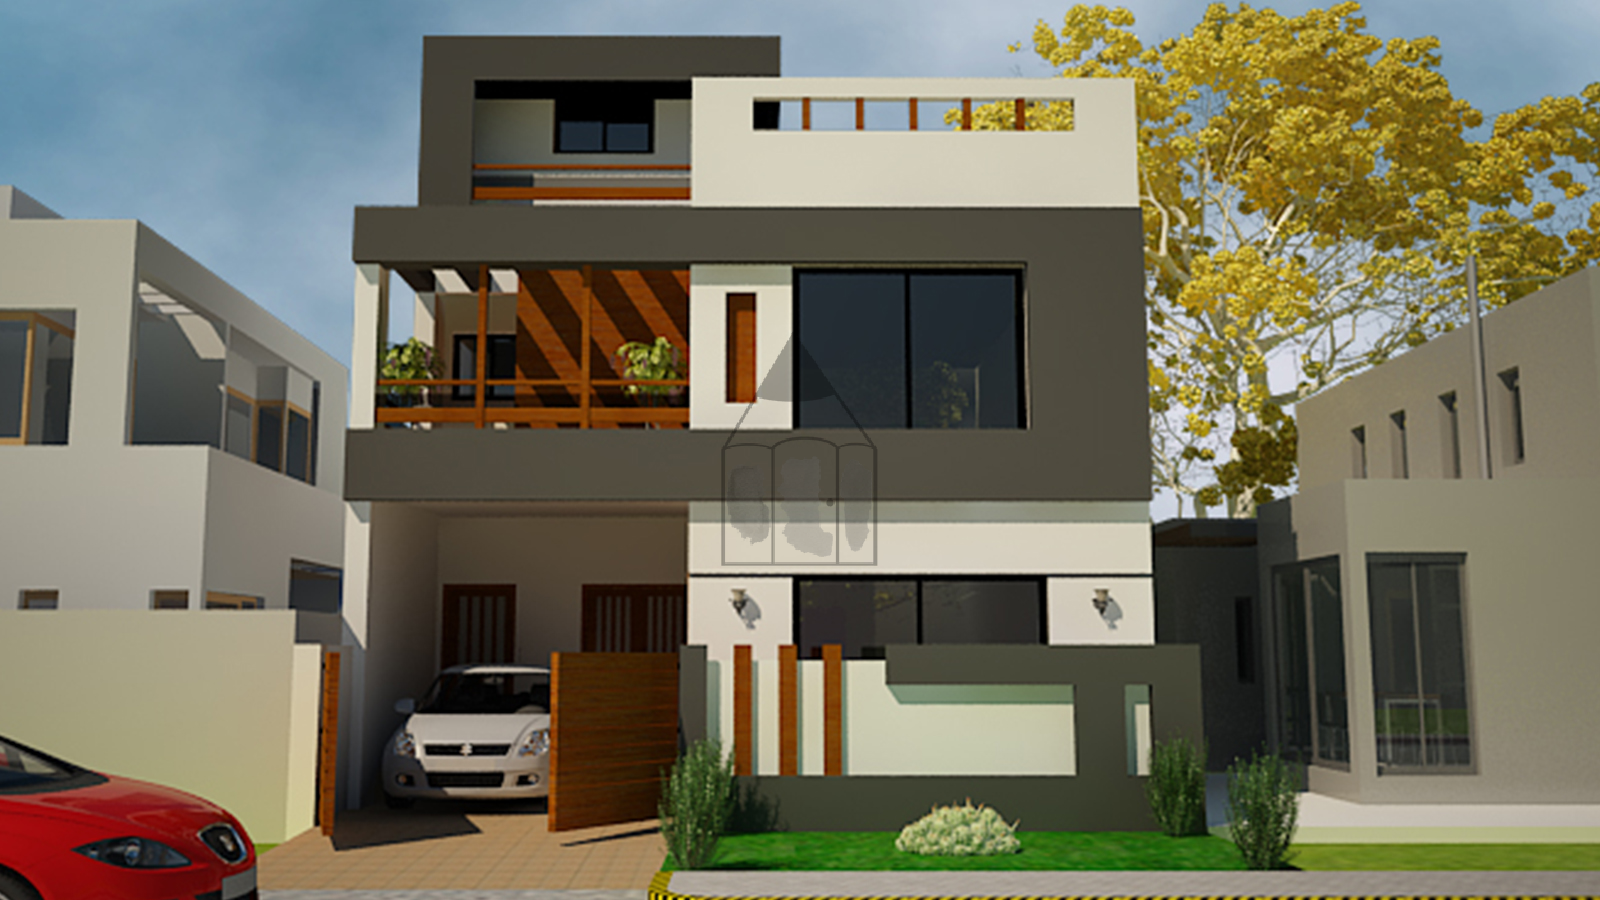 5 marla house front design ashfaq for Front house design for small houses